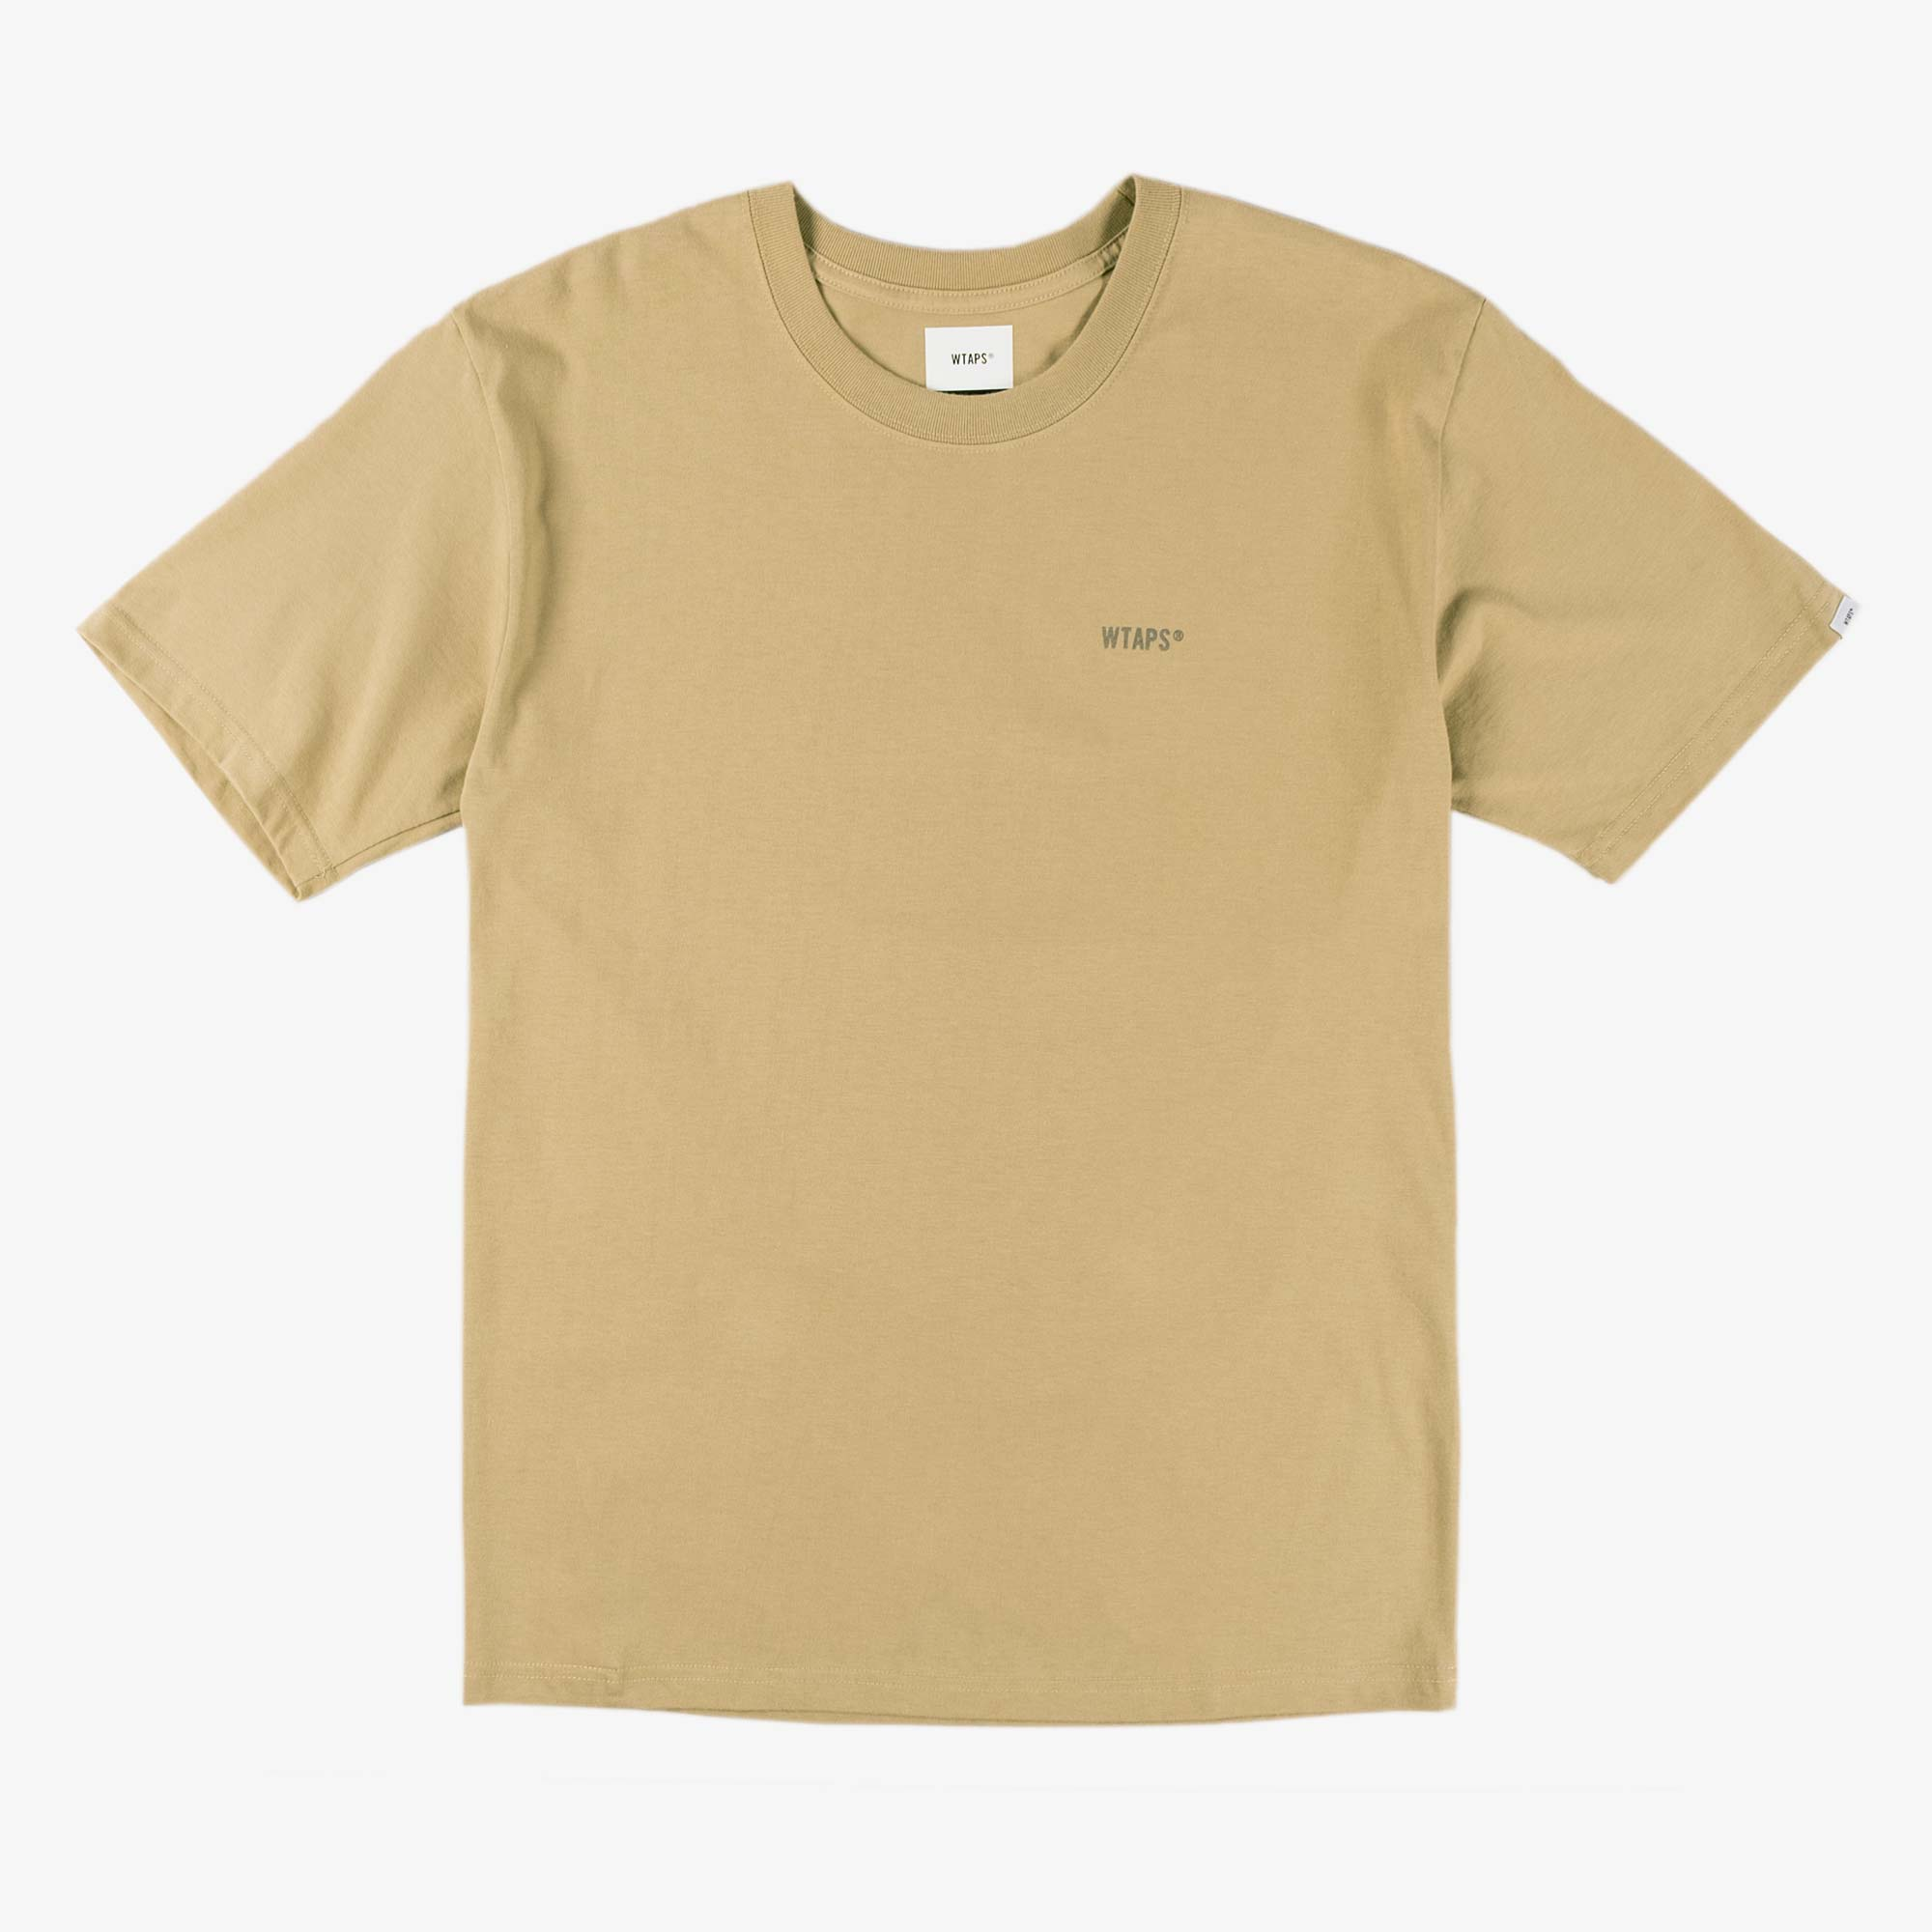 WTAPS 40PCT Uparmored Tee - Beige 2